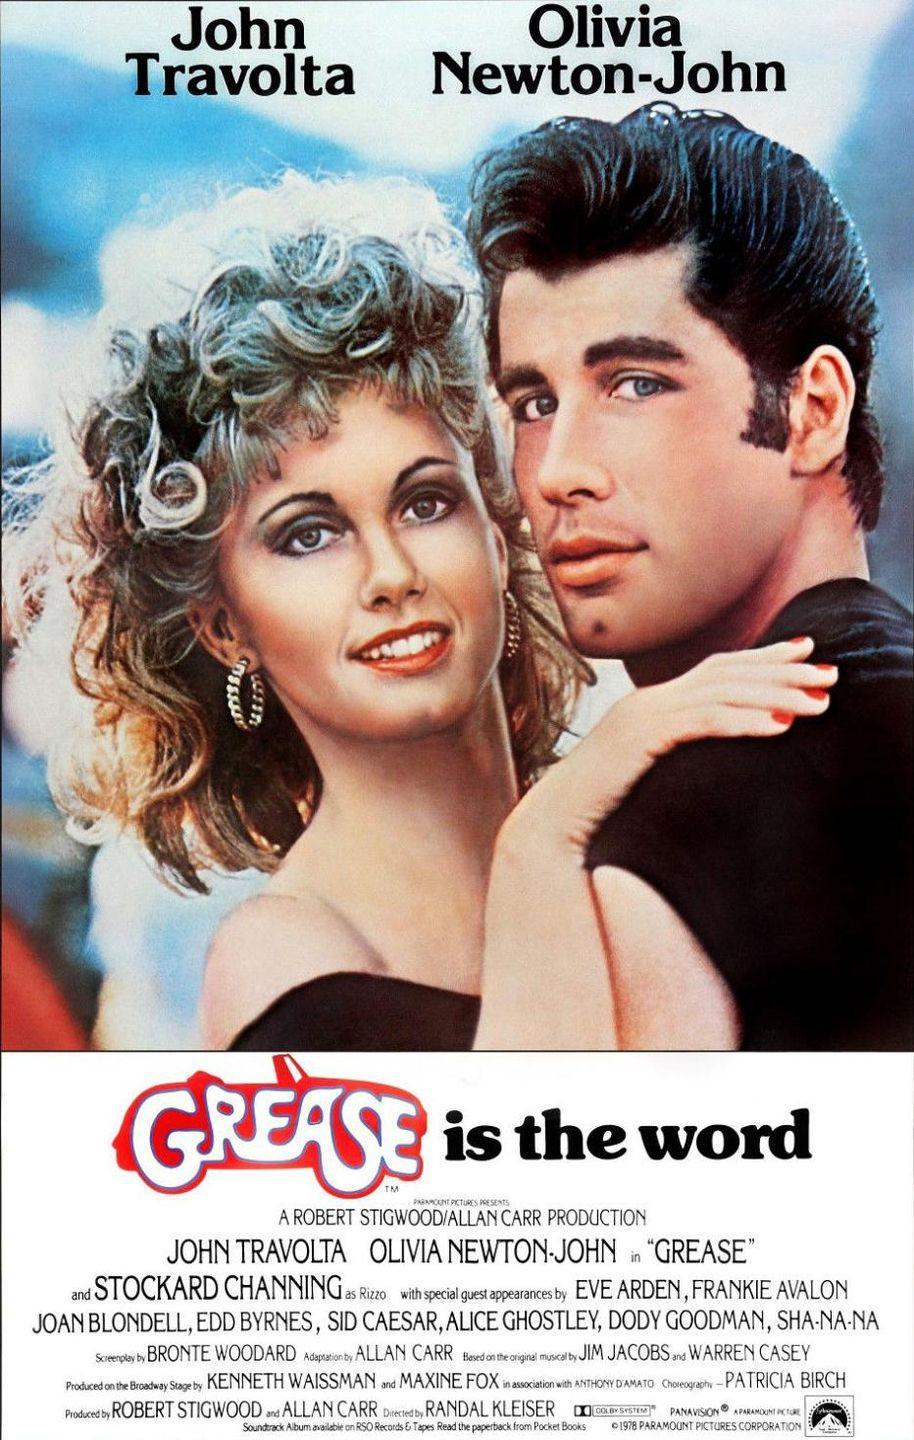 "<p>Grease will <em>always </em>be the word. The story of Sandy and Danny's attempt to make their summer romance continue into the school year despite high school social politics getting in the way is as popular as ever over 40 years after its release. Sure, the plot has its issues when it comes to the whole ""changing yourself for a guy/girl"" premise, but those frustrations tend to melt away once songs like ""Beauty School Dropout"" and ""We Go Together"" come on.</p><p><a class=""link rapid-noclick-resp"" href=""https://www.amazon.com/Grease-Randal-Kleiser/dp/B0026SFEW8/ref=sr_1_2?tag=syn-yahoo-20&ascsubtag=%5Bartid%7C10063.g.34344525%5Bsrc%7Cyahoo-us"" rel=""nofollow noopener"" target=""_blank"" data-ylk=""slk:WATCH NOW"">WATCH NOW</a></p>"